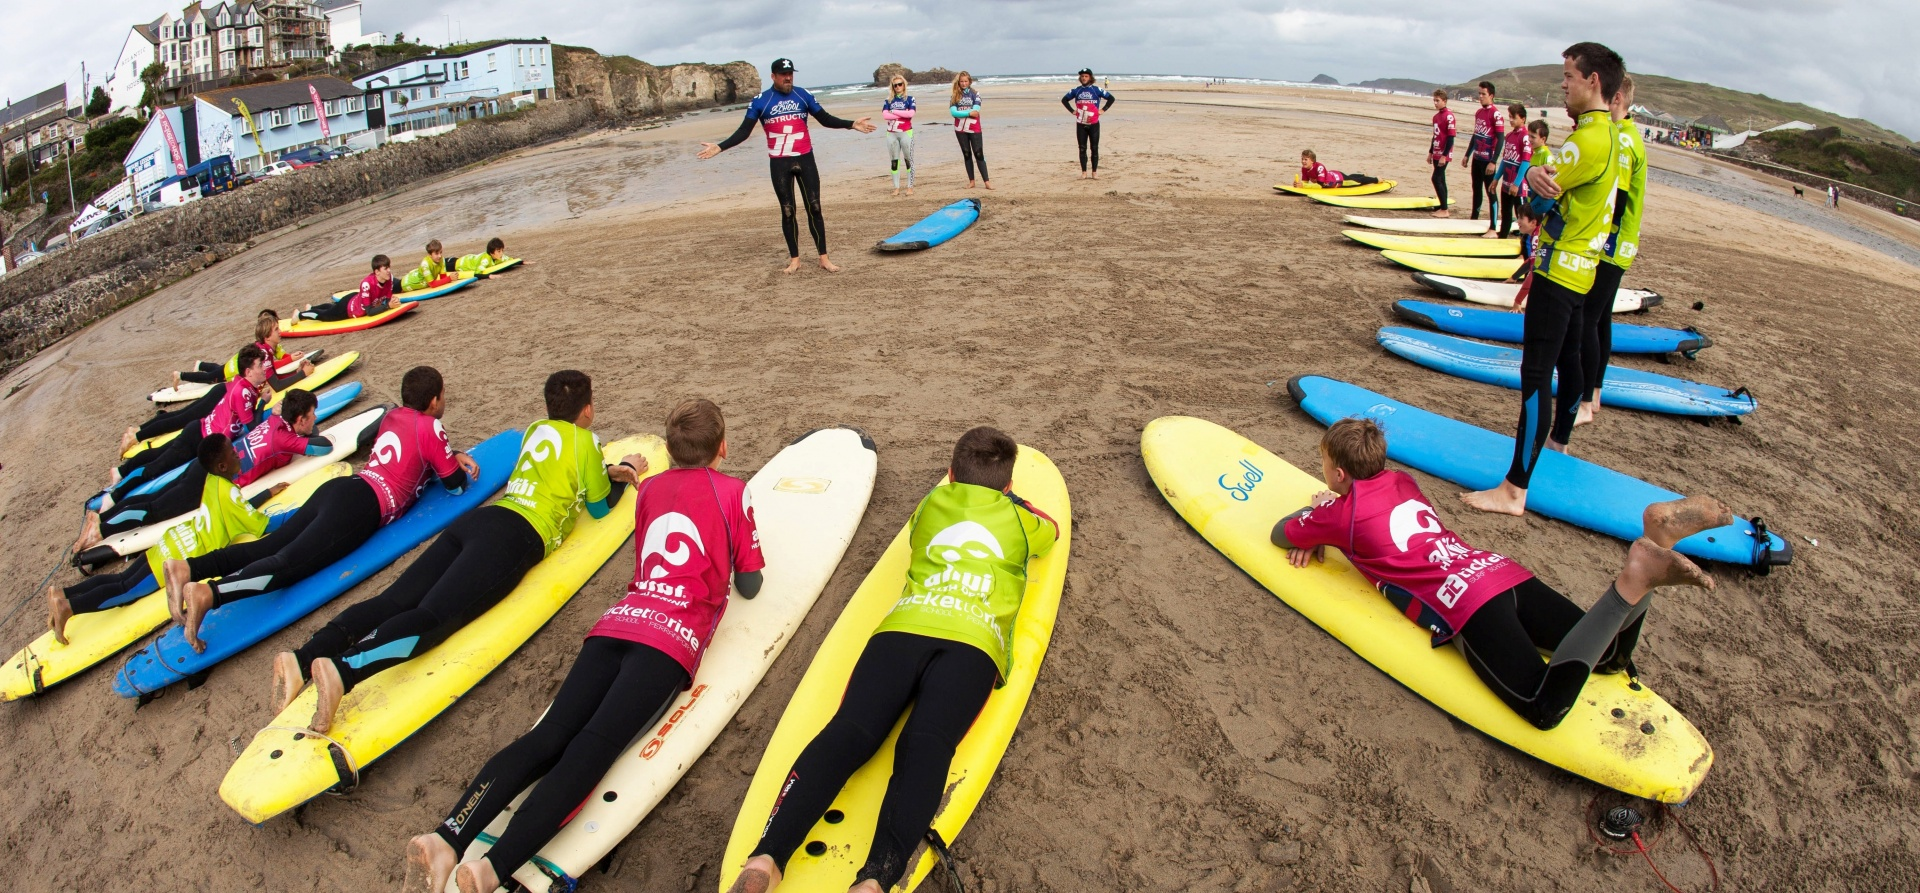 Cake Decorating Classes Northern Beaches : Surfing Lessons in Cornwall, Cornwall Surf School